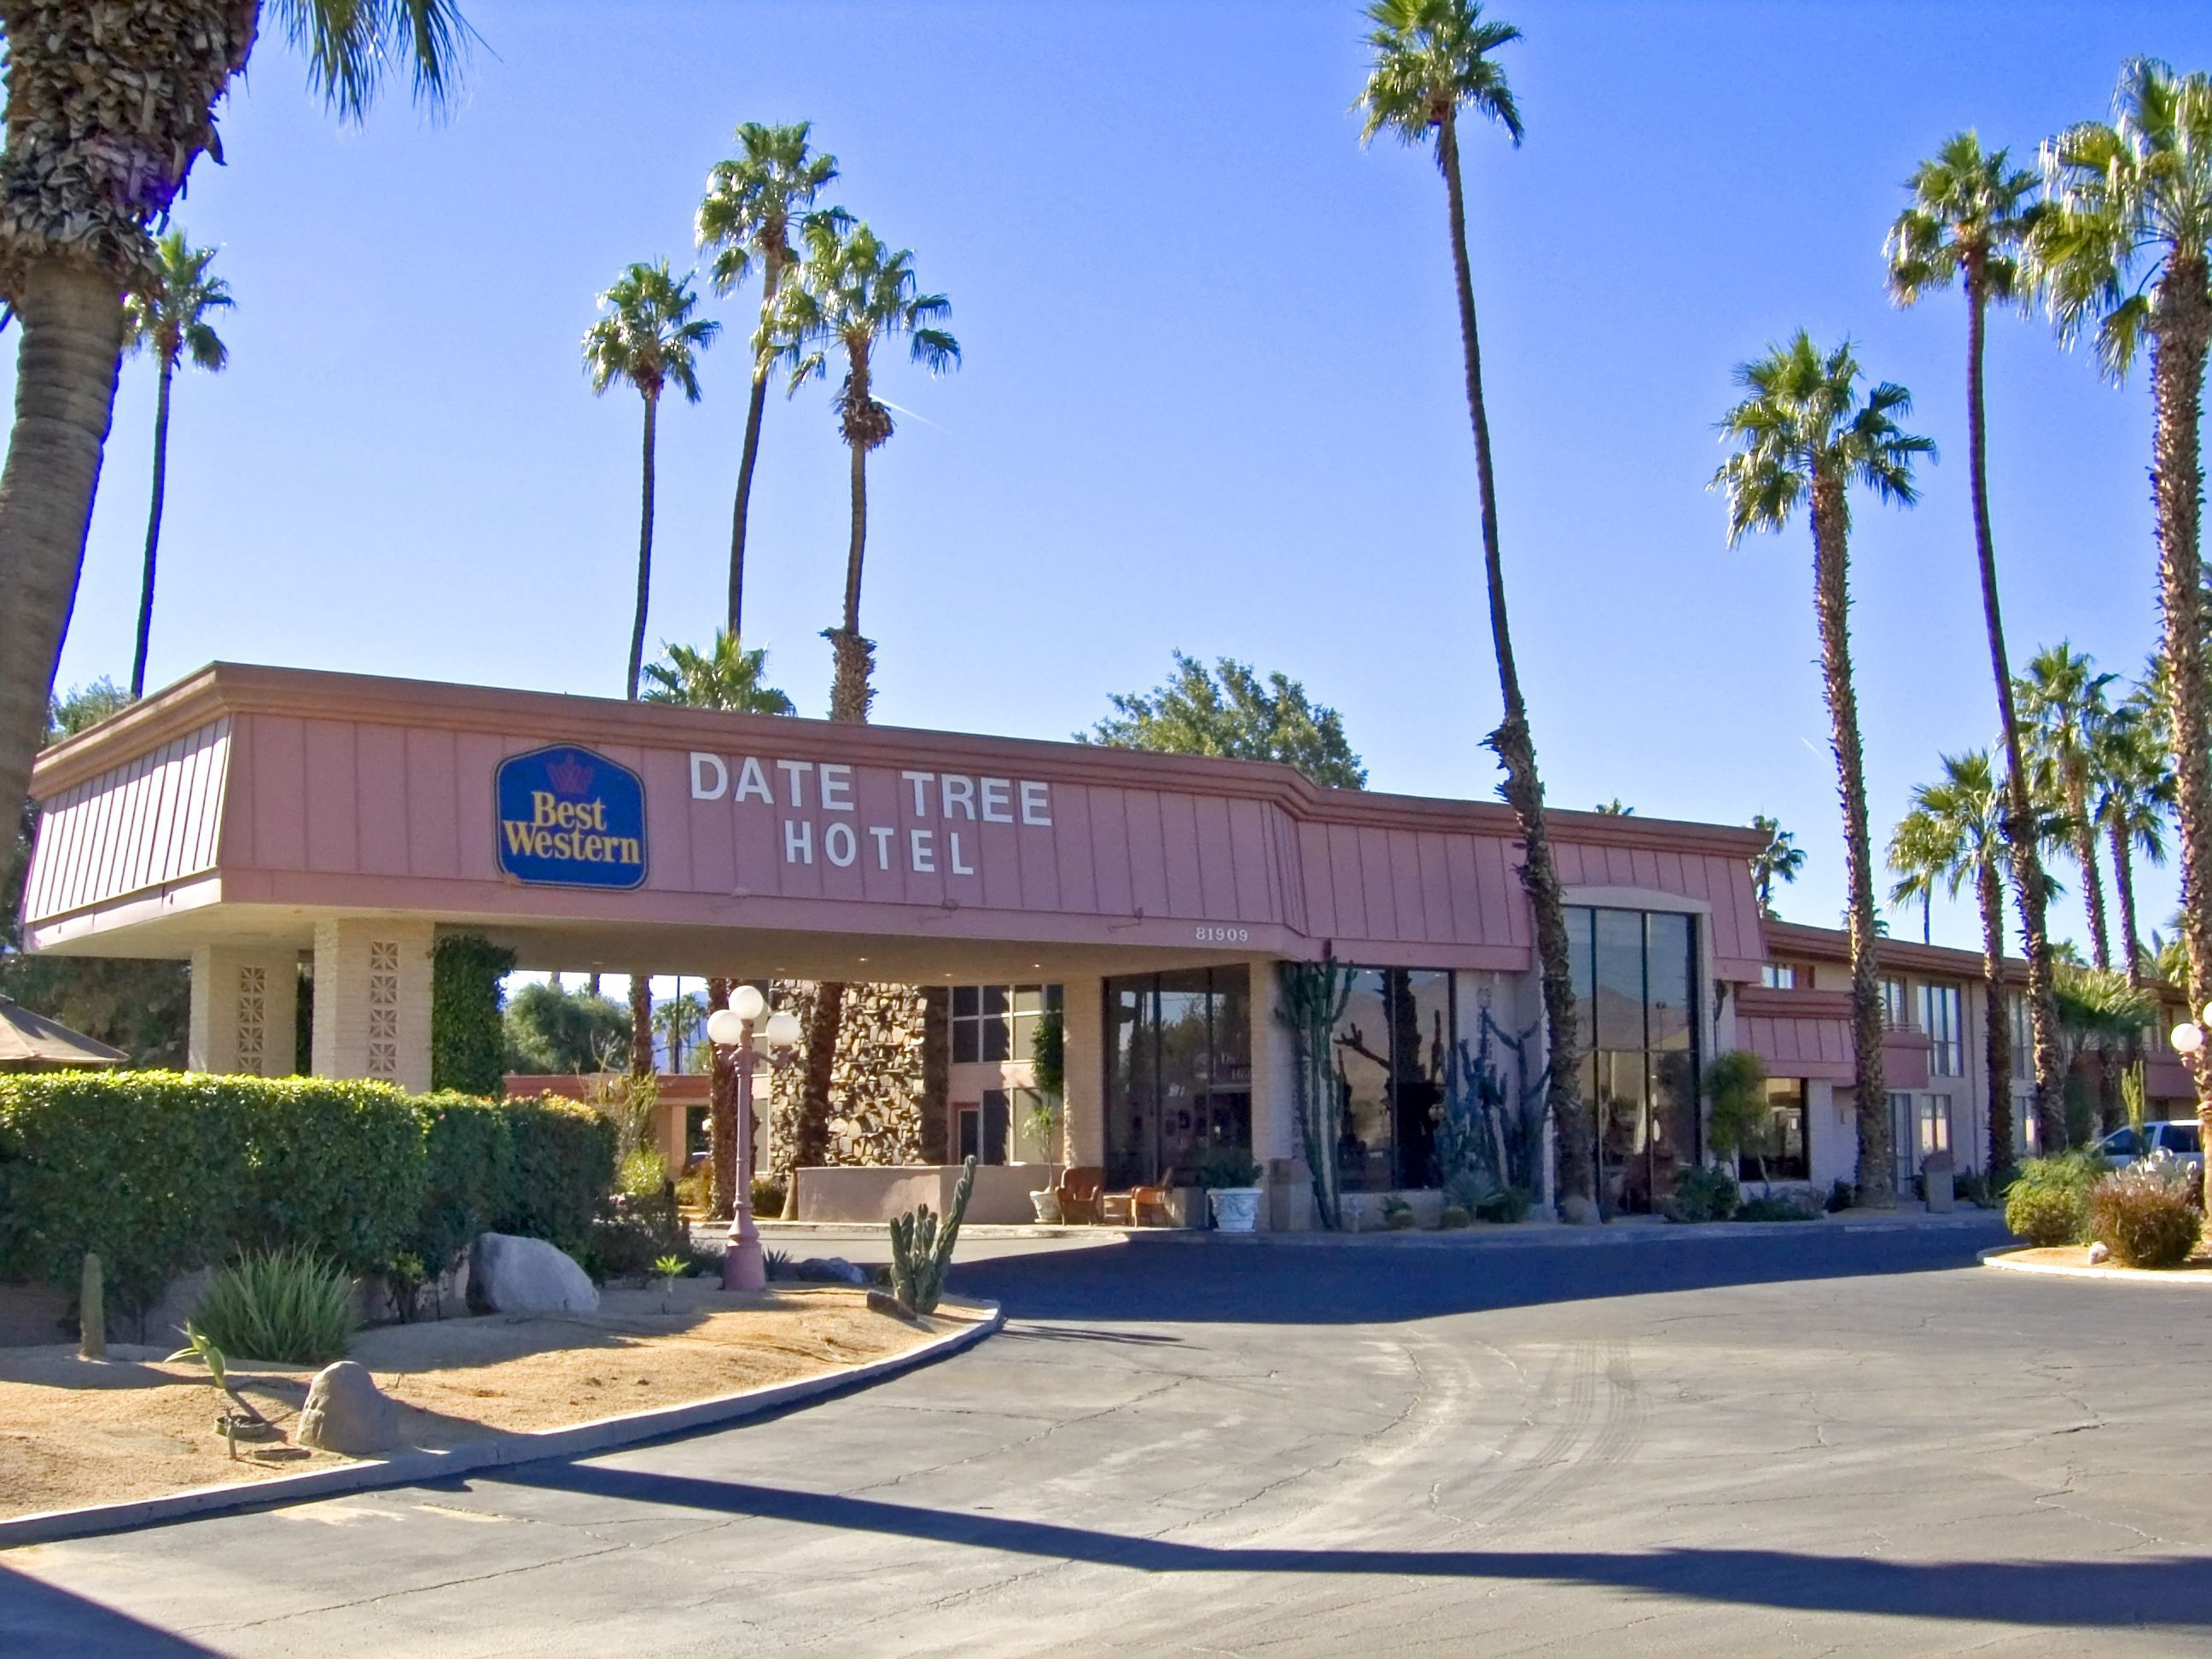 Best Western Date Tree Hotel Indio Ca 2 United States From Us 131 Booked